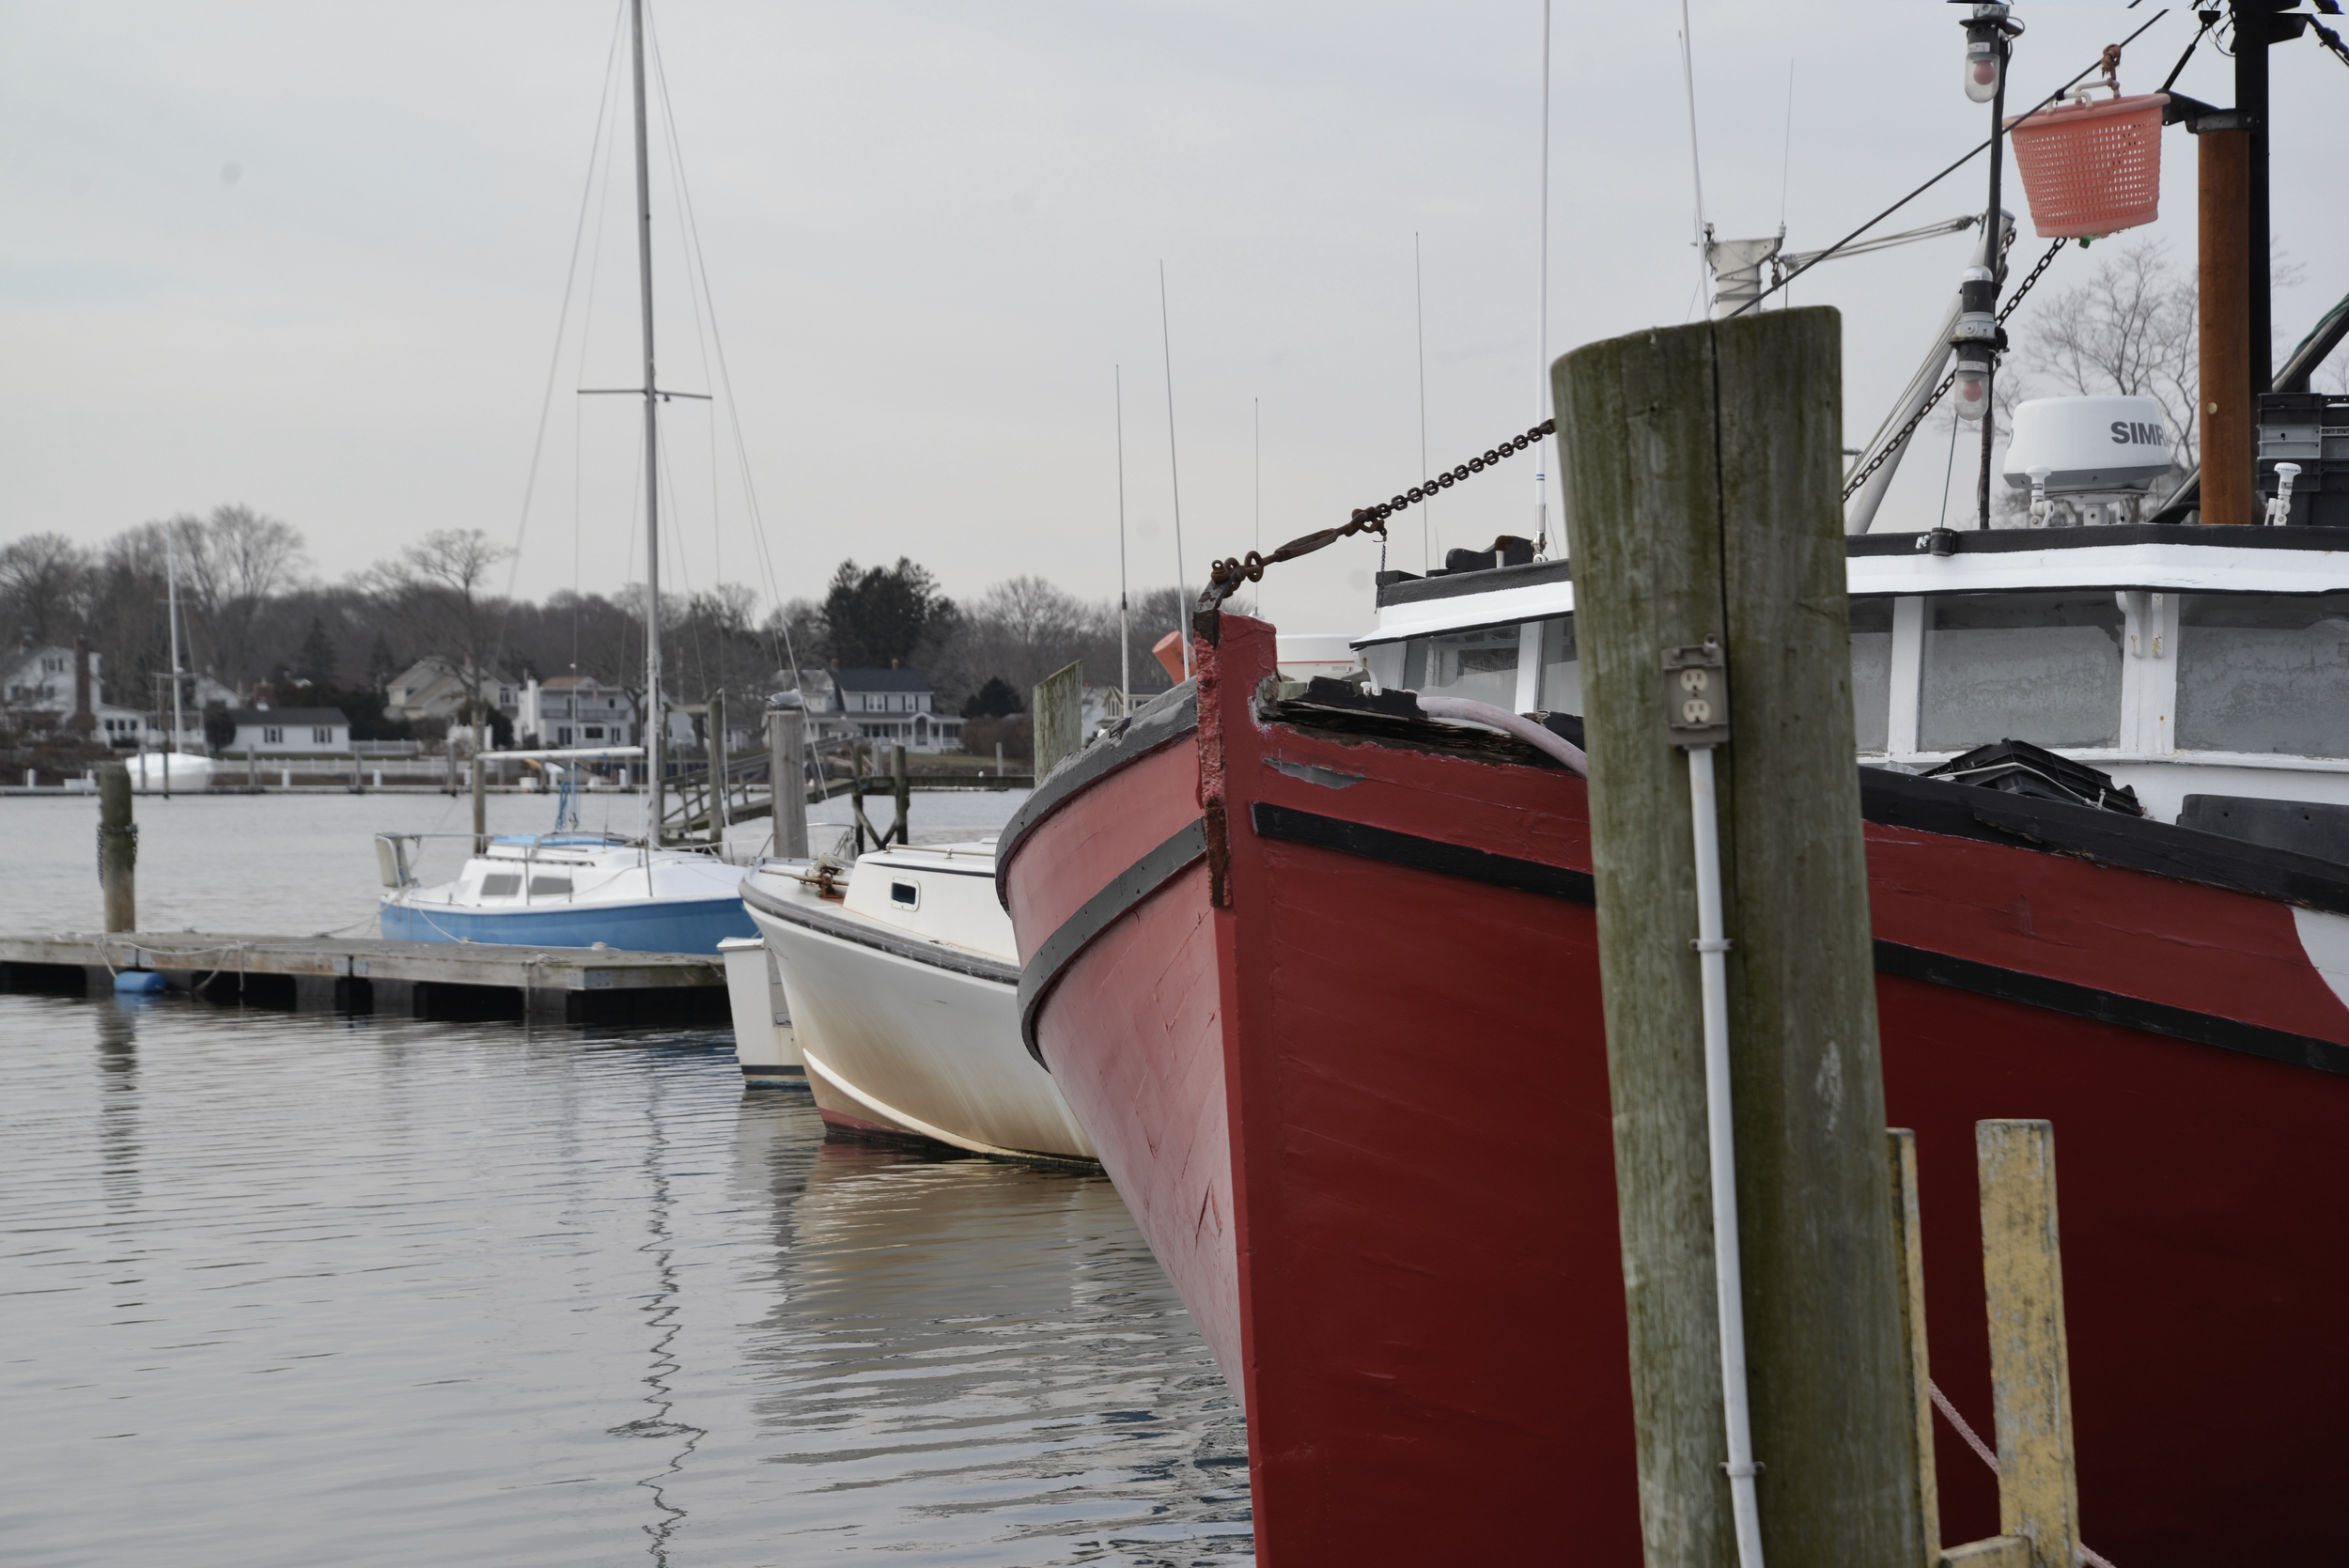 Fishing boats share space with recreational craft in Wickford Harbor. (Joanna Detz/ecoRI News)